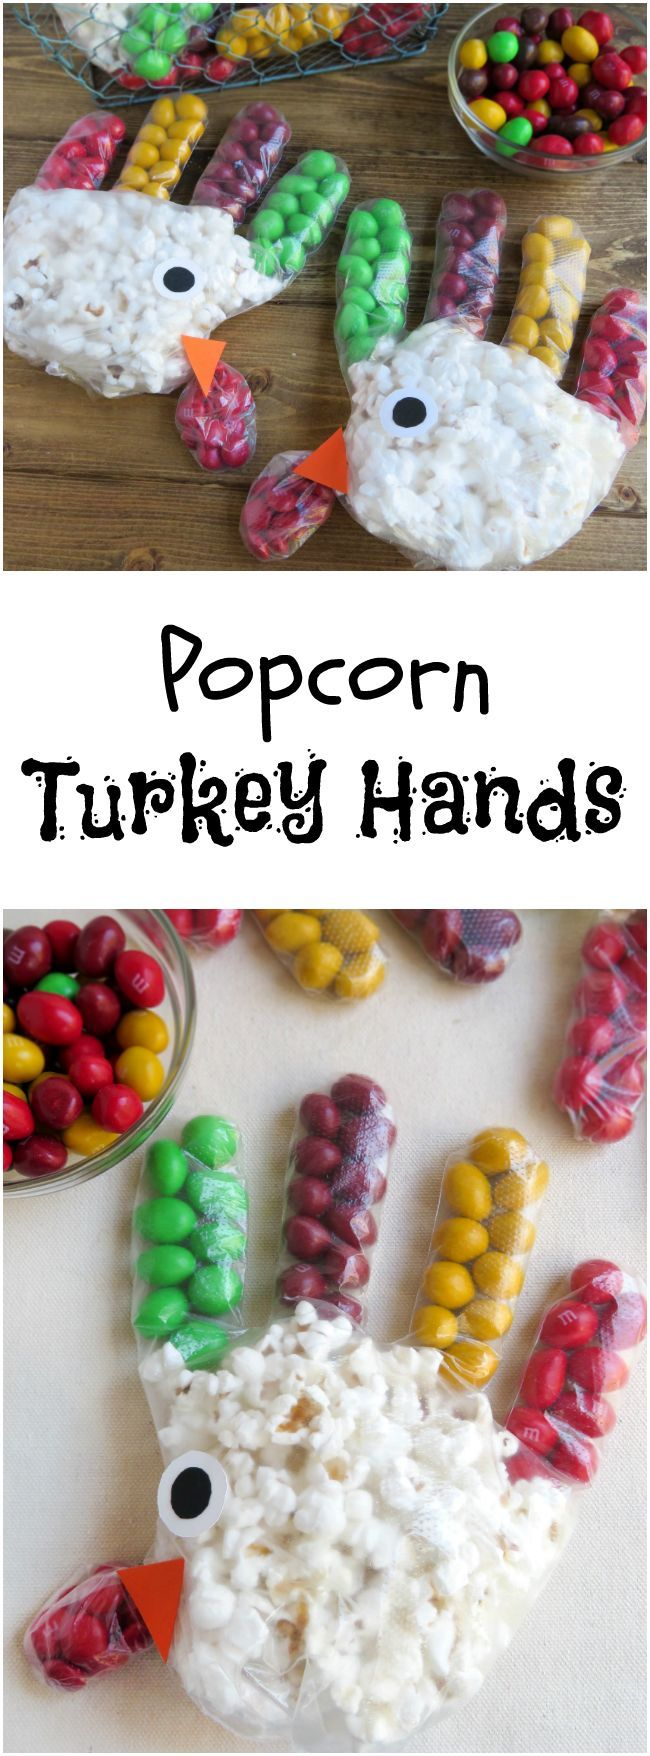 The kids can help you make the Popcorn Turkey Hands recipe and are great for a school party or the kid's Thanksgiving table.